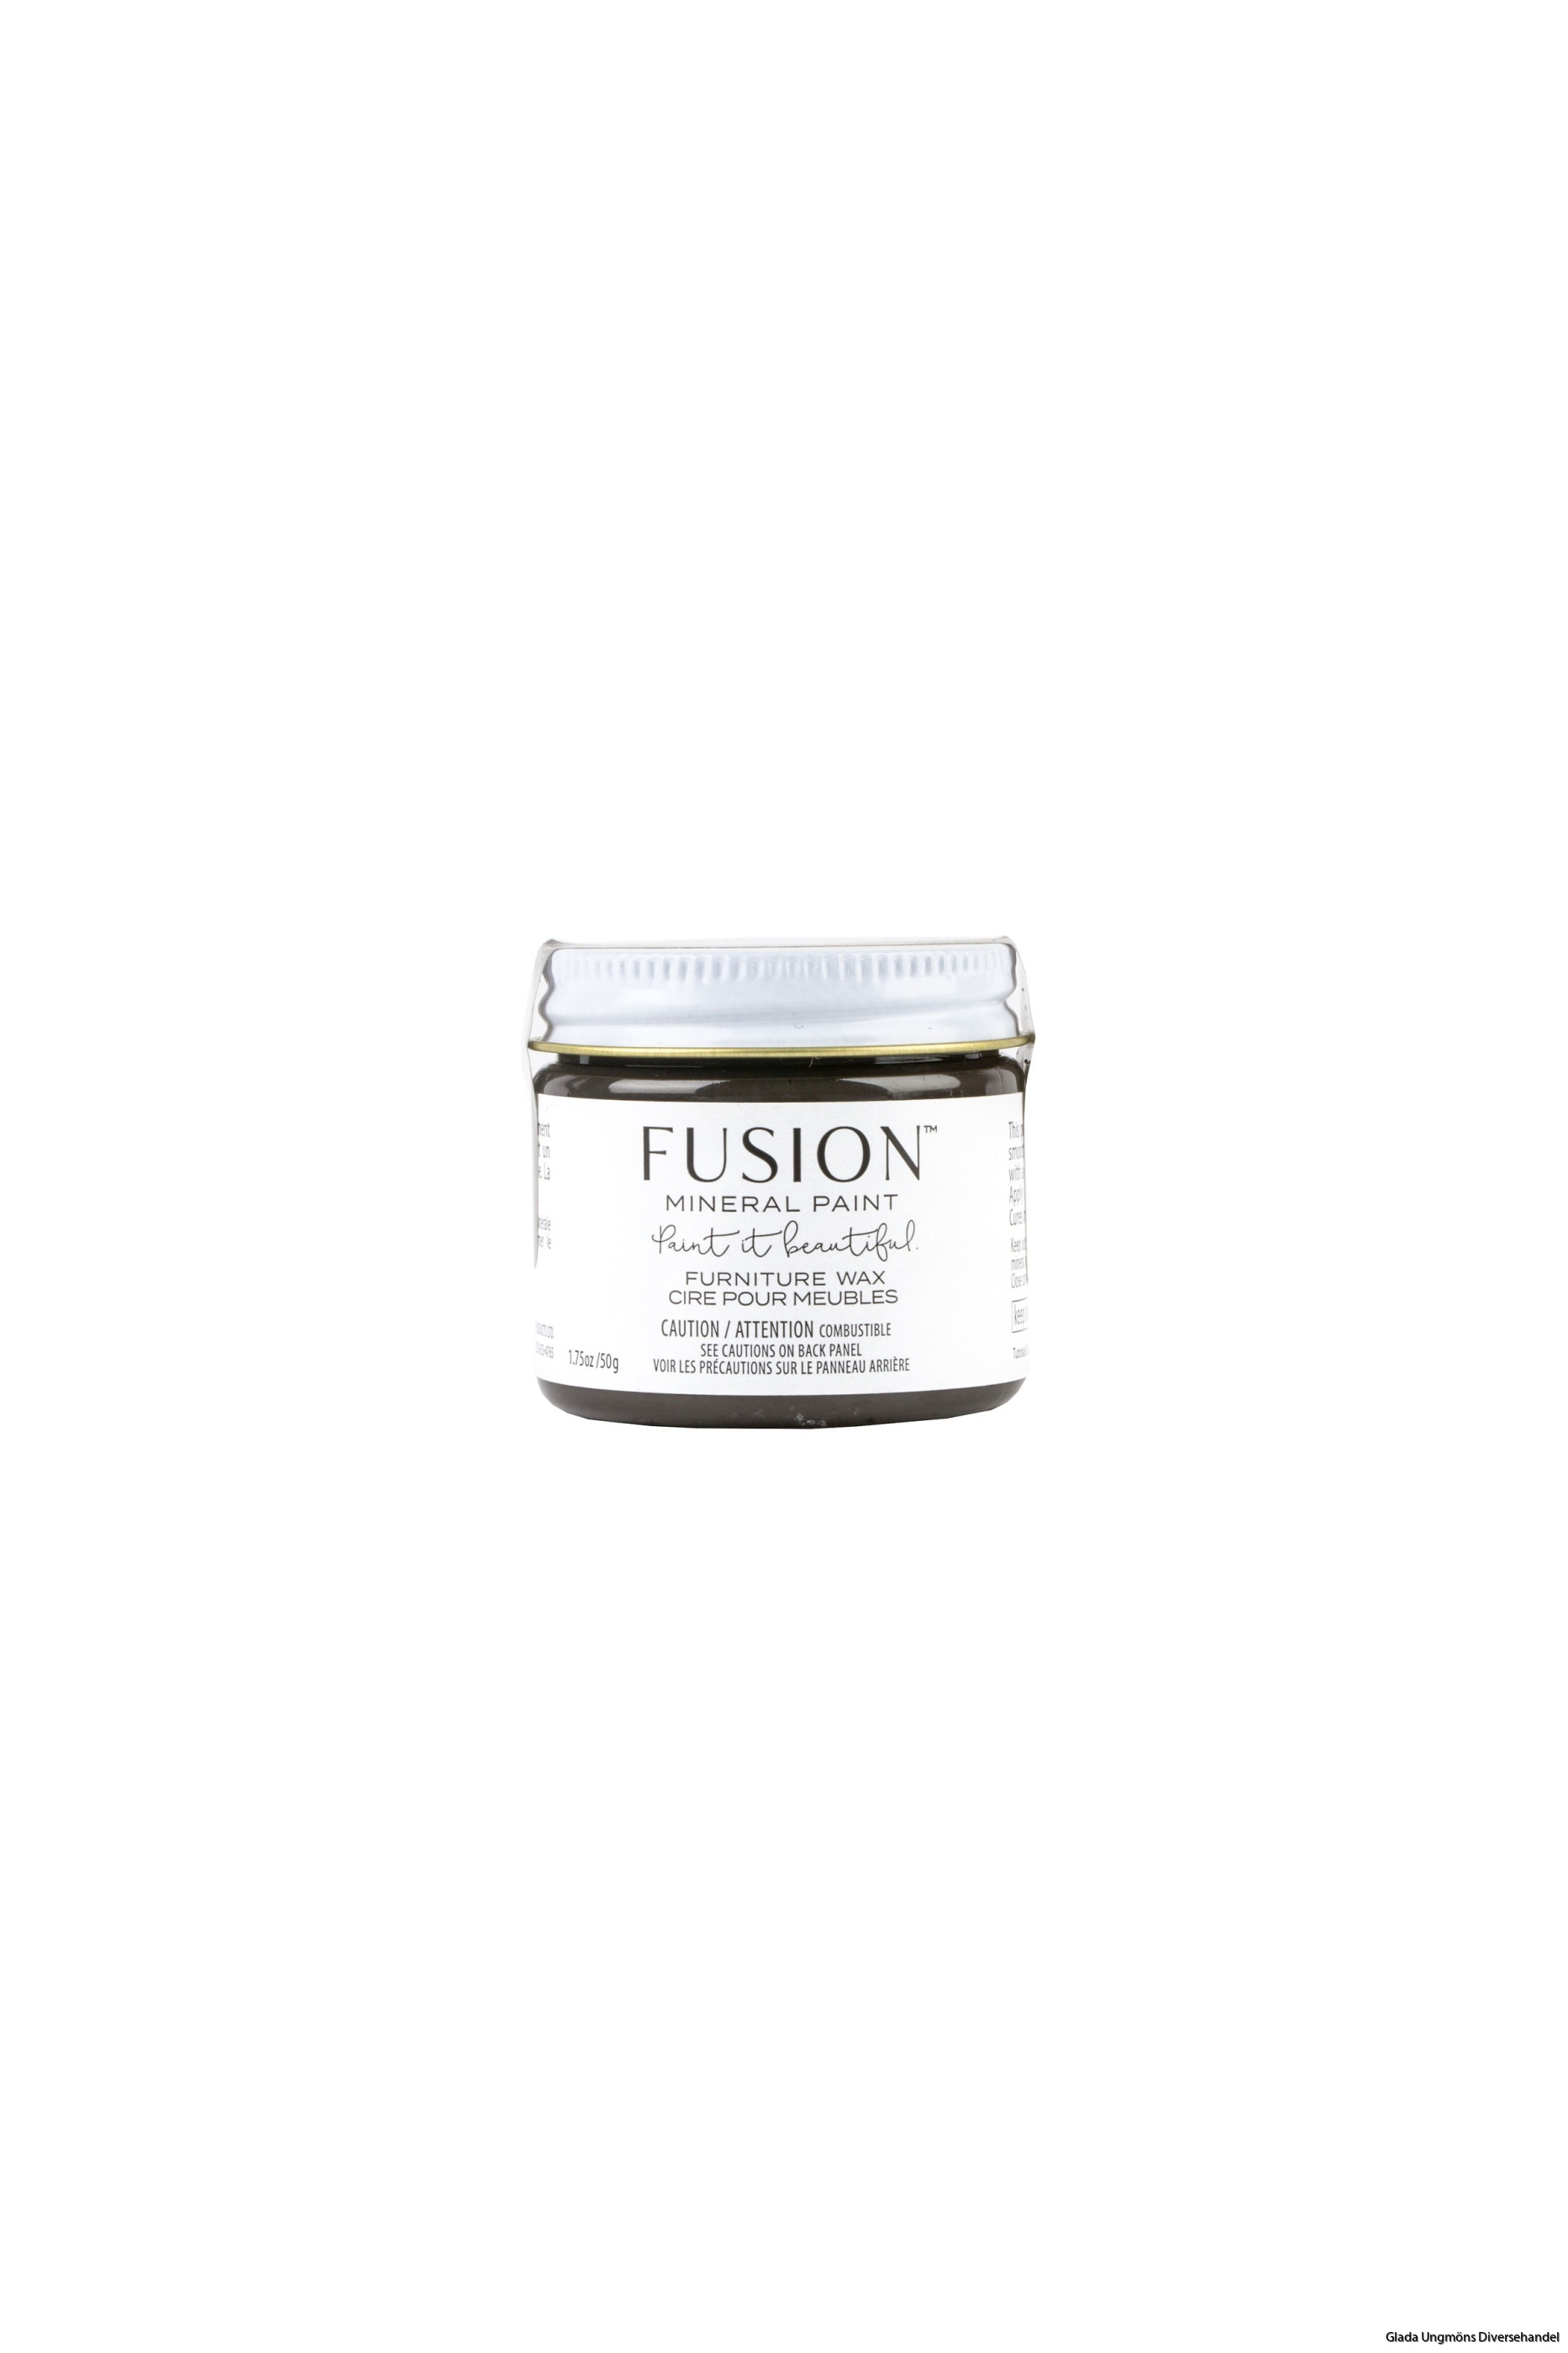 fusion_mineral_paint-wax-ageing-50g